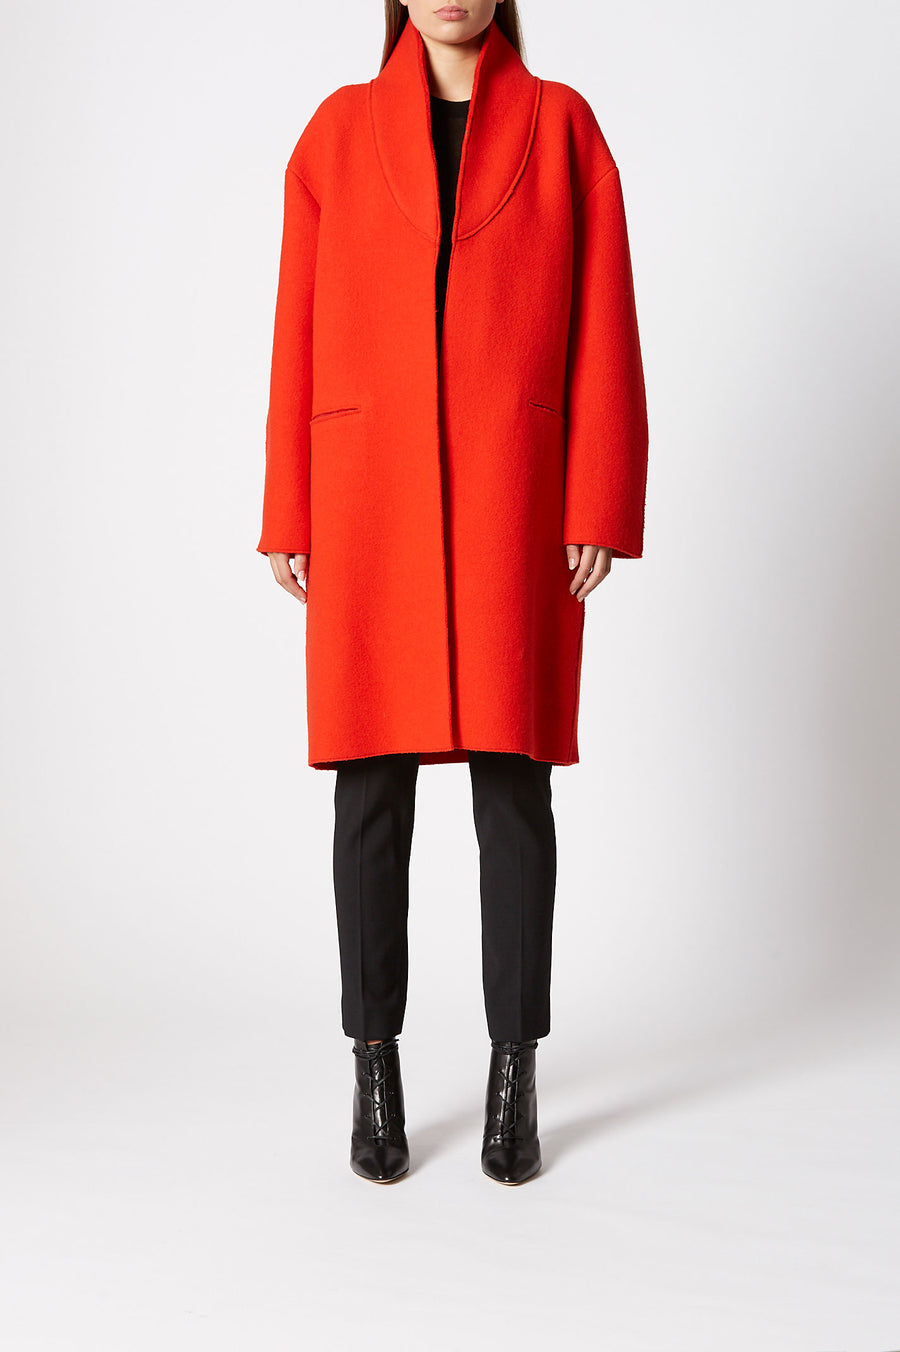 Cut Edge Wool Coat, slim fit, mid length coat, seam pockets, high neck collar, one button fastening at the top where collar wraps around to close, Color Red